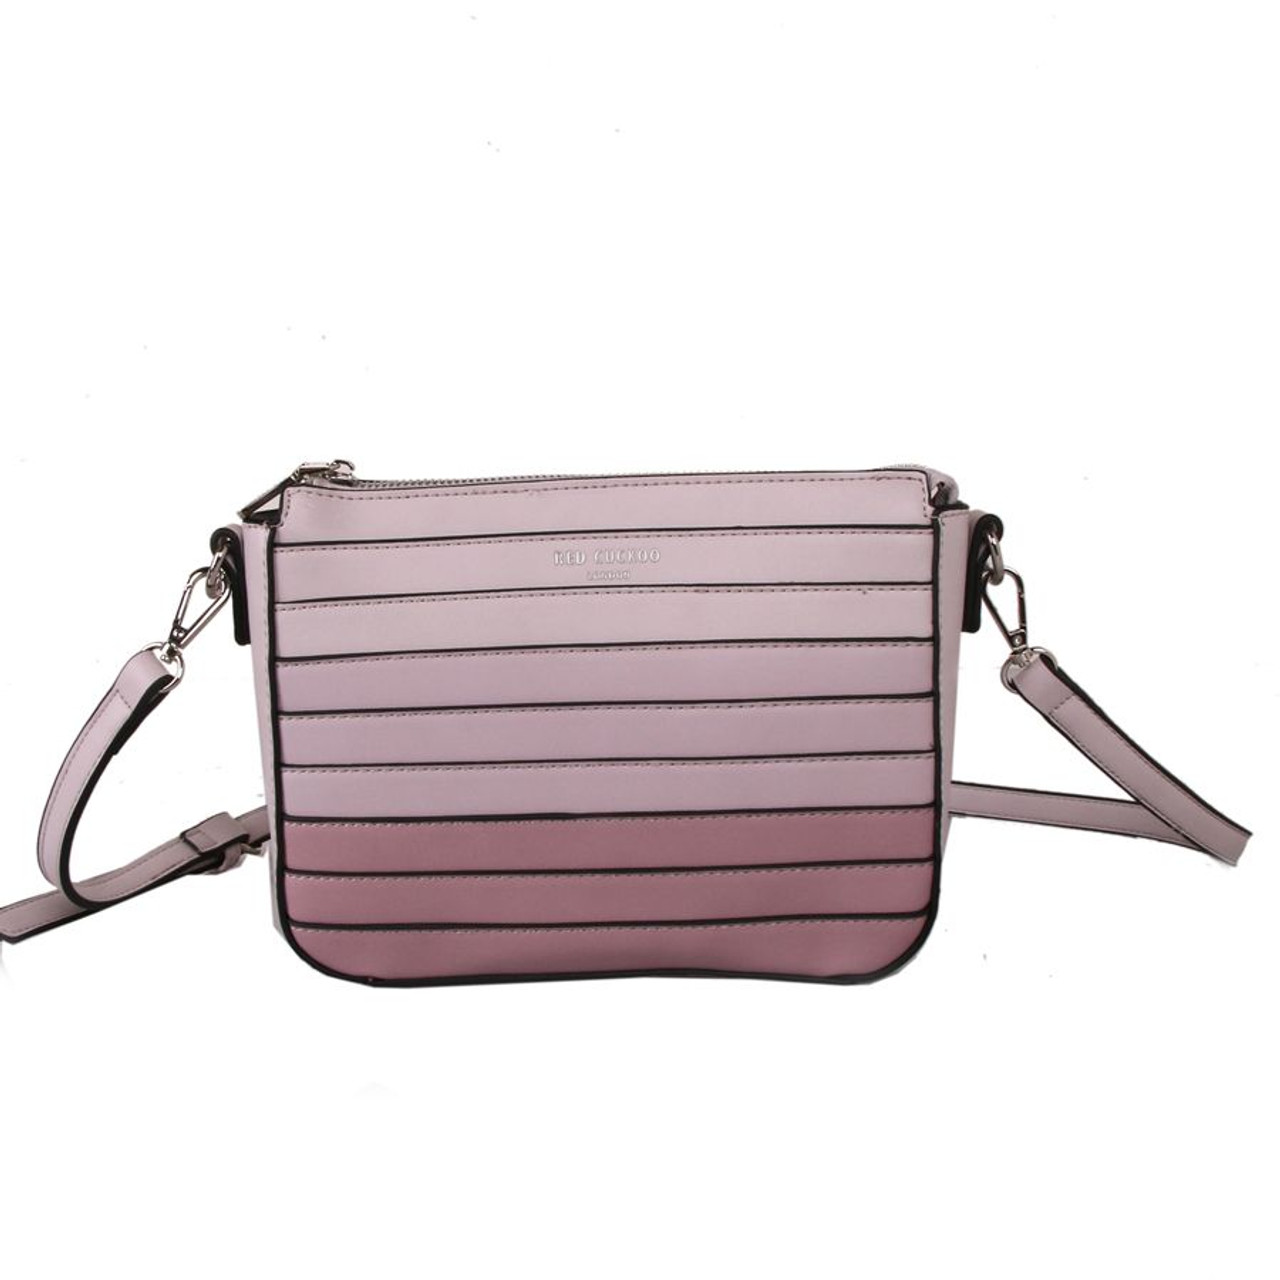 77a79da6b9b Red Cuckoo Pink Cross Body Bag with Ombre Gradient Effect - Itsy ...